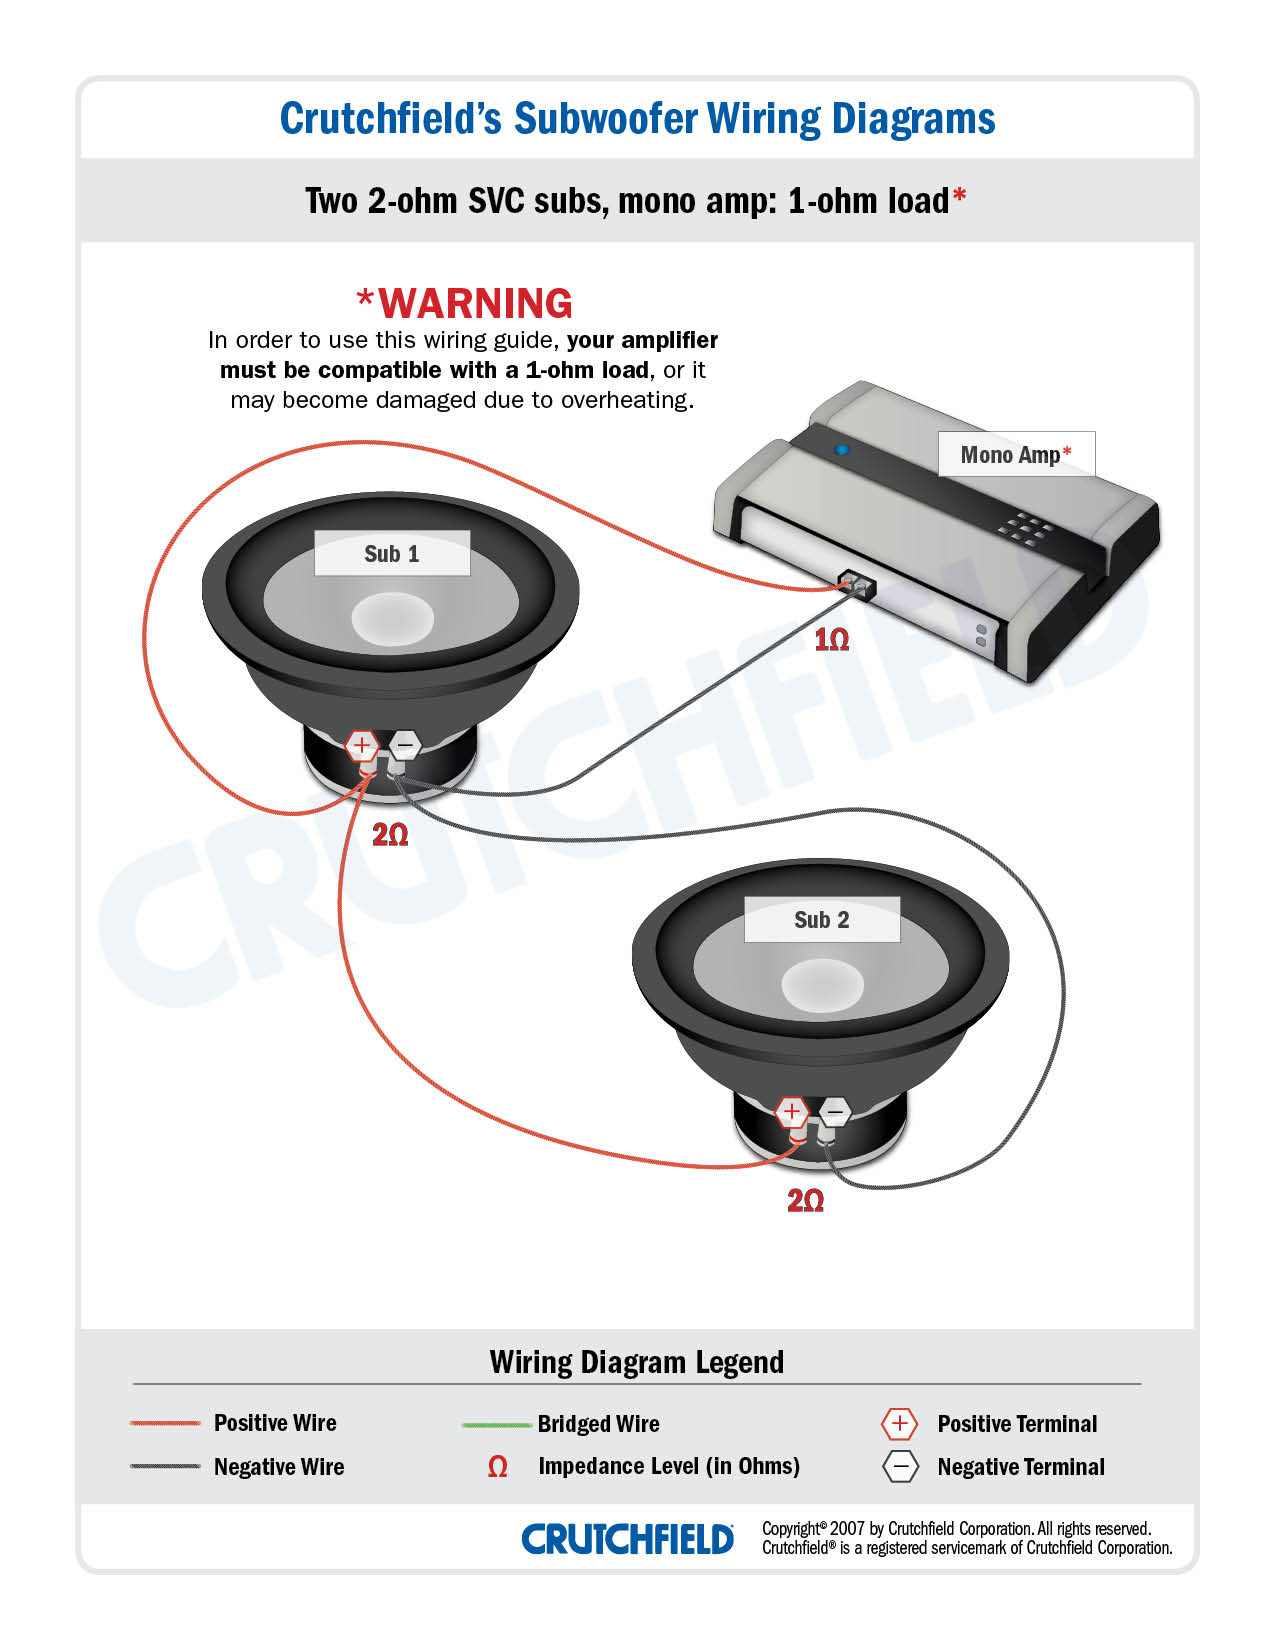 jl audio subs circuitdata mx tlhow to wire 2 4 ohm subs to a mono besides 4 ohm wiring diagram 2